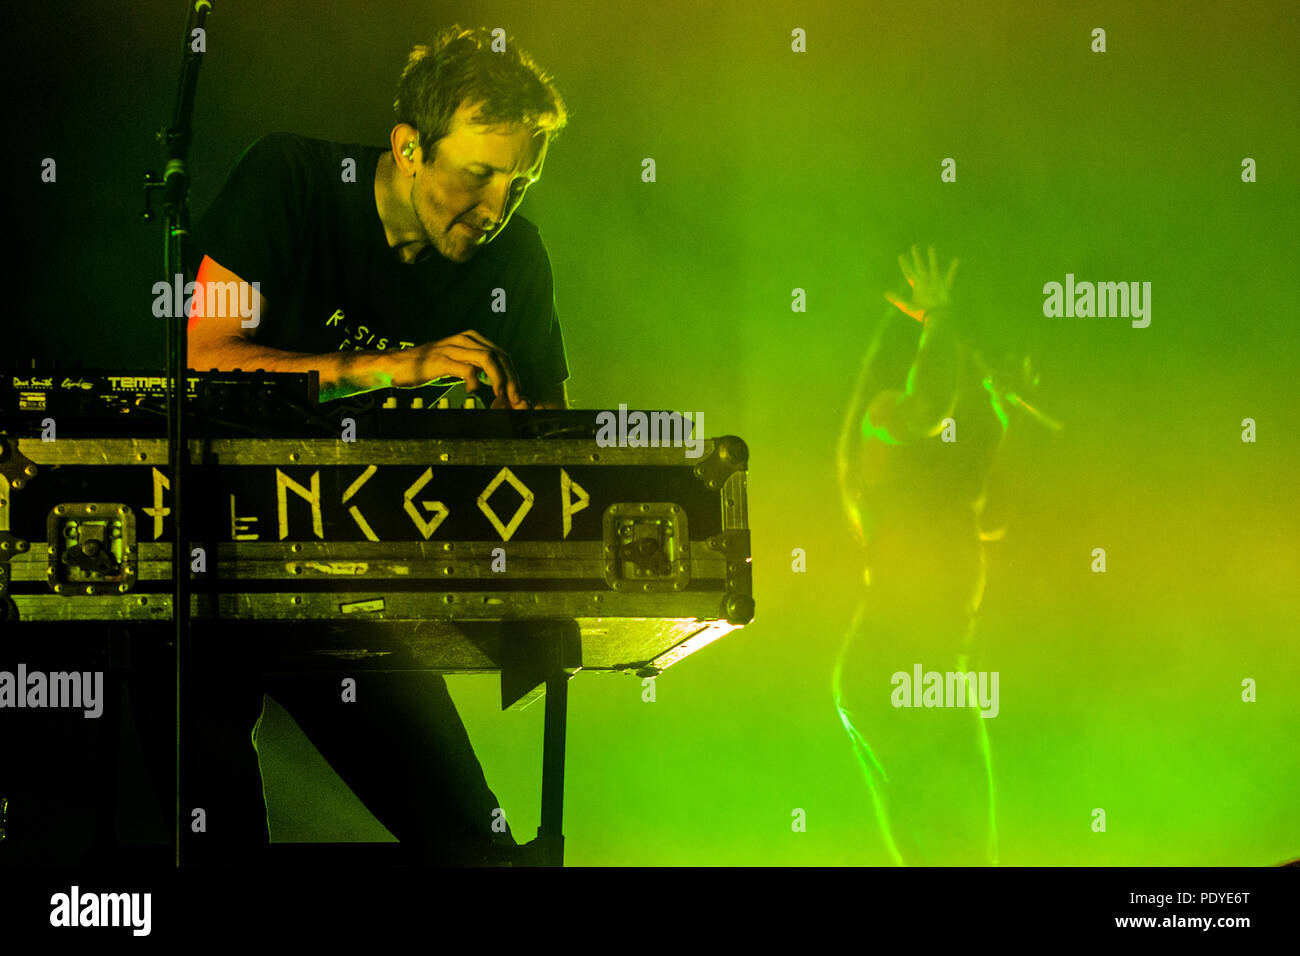 Amelia Meath and Nick Sanborn of Sylvan Esso performing at the Bomb Factory in Dallas, Texas on March 20, 2018. - Stock Image